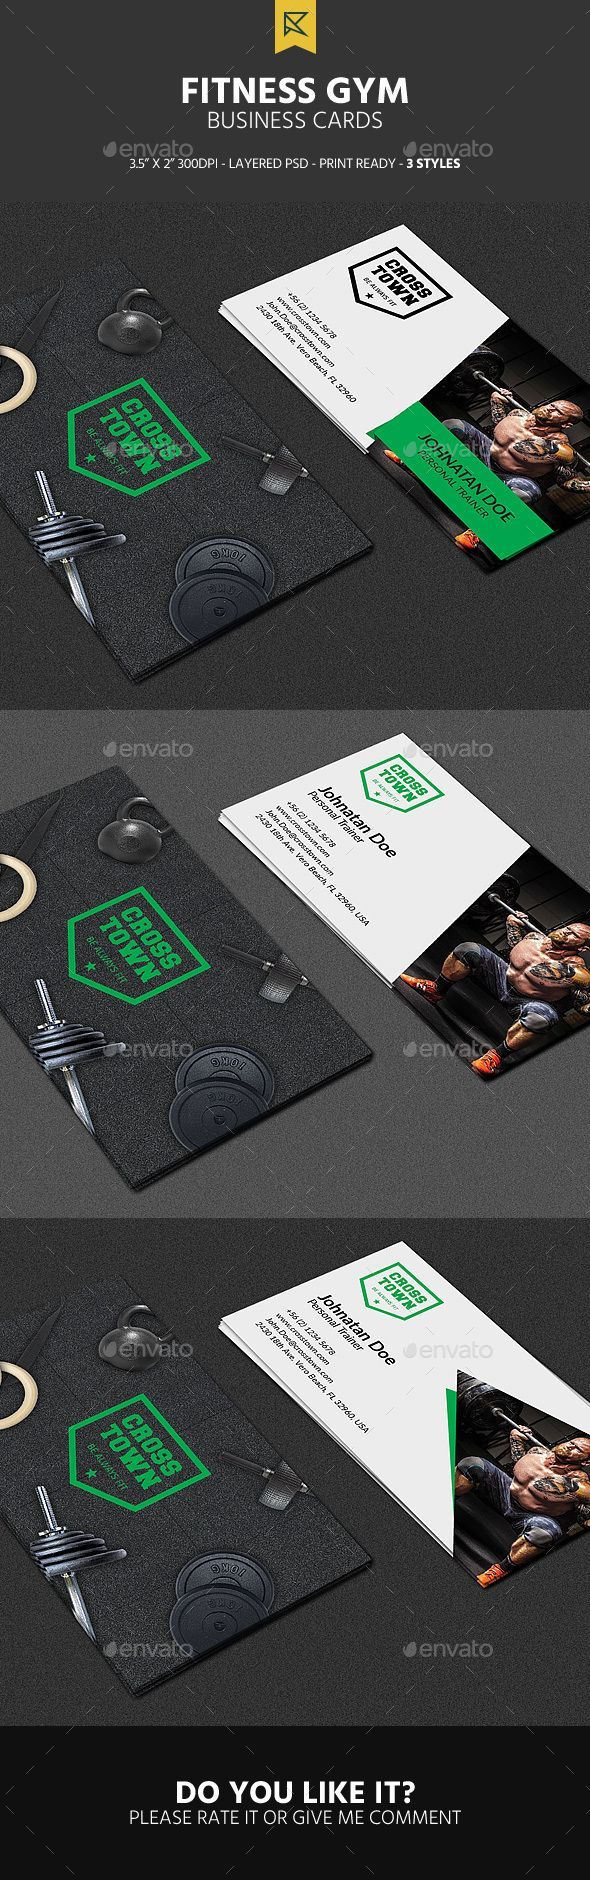 3 Fitness Gym Business Cards Business Cards Print Templates